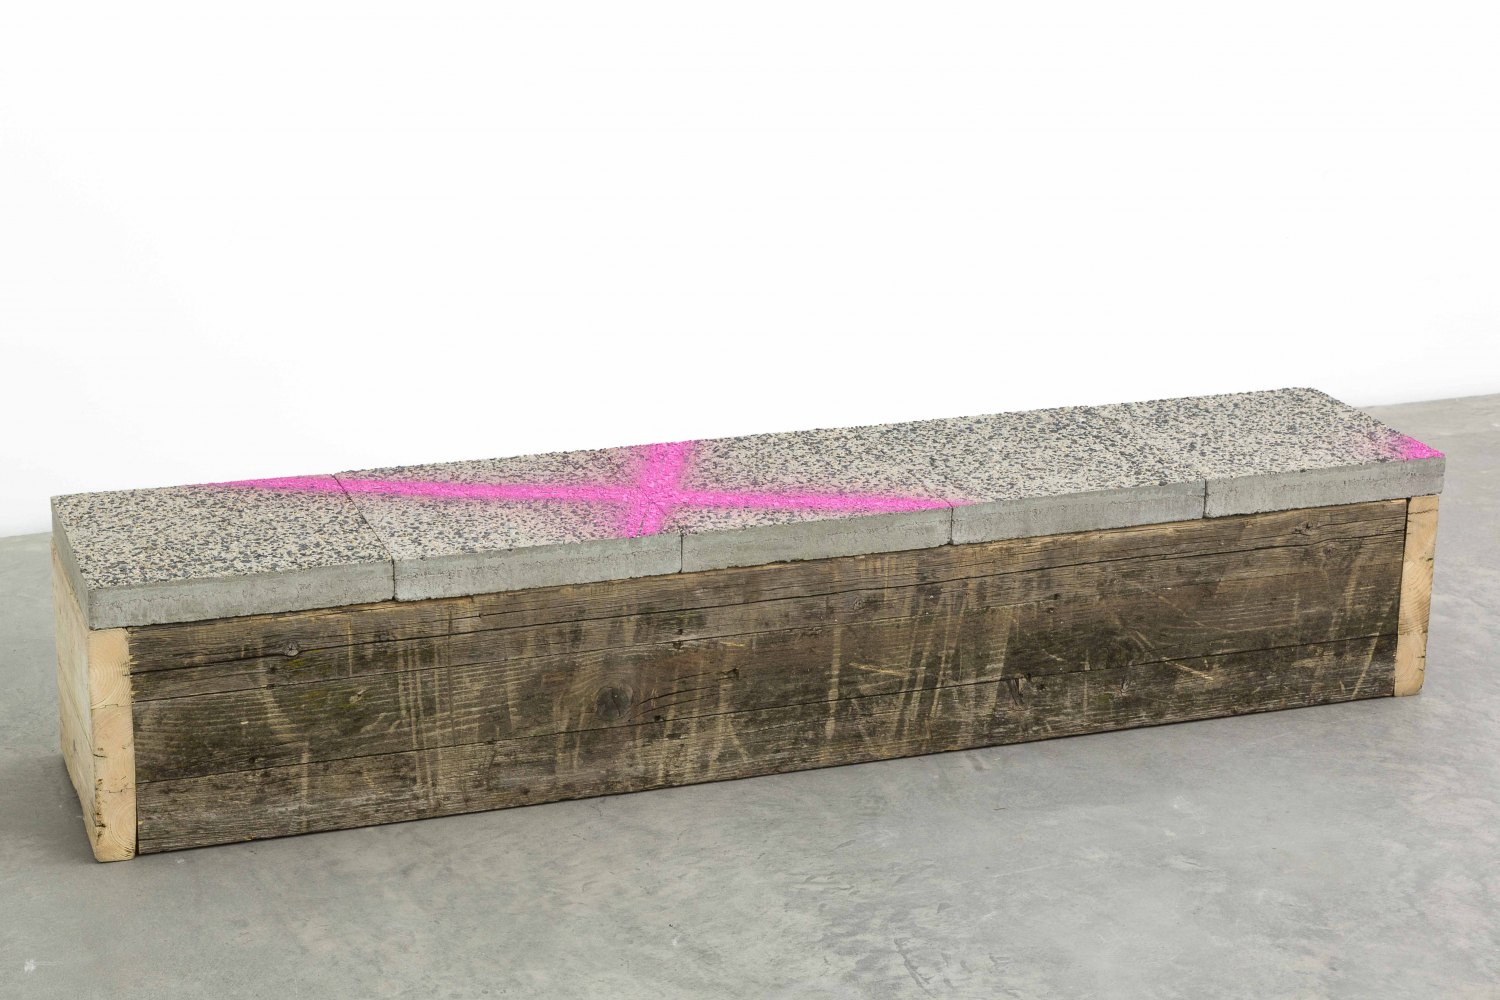 Klara Lidén  Untitled, 2015 Wood, concrete, 34 × 140 × 35 cm